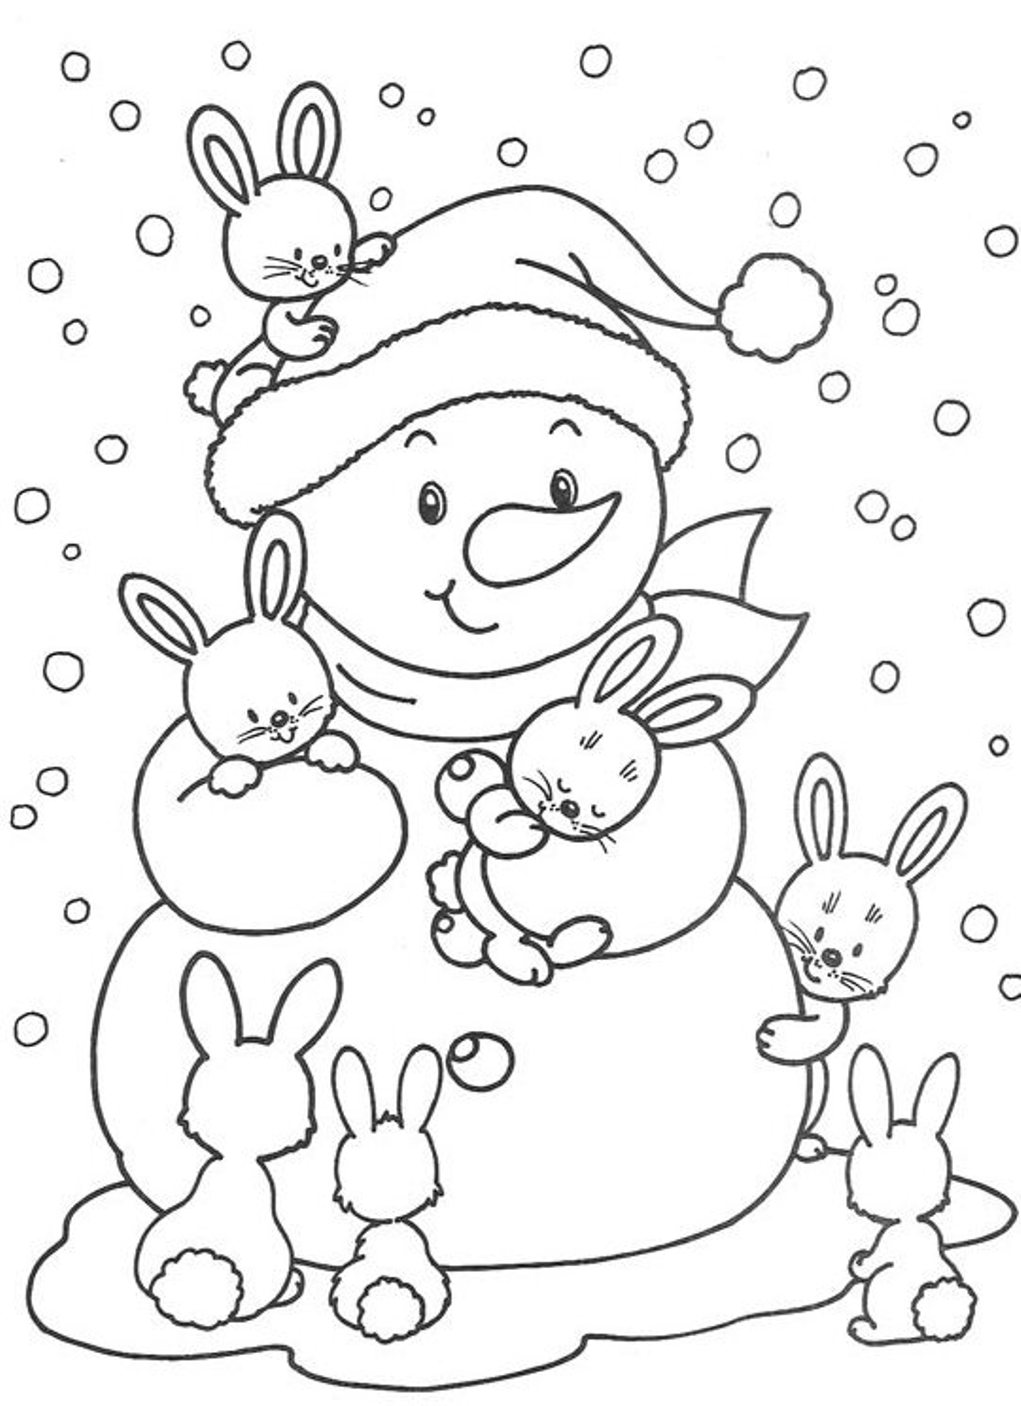 Printable Winter Coloring Pages Coloring Me Winter Coloring Pages